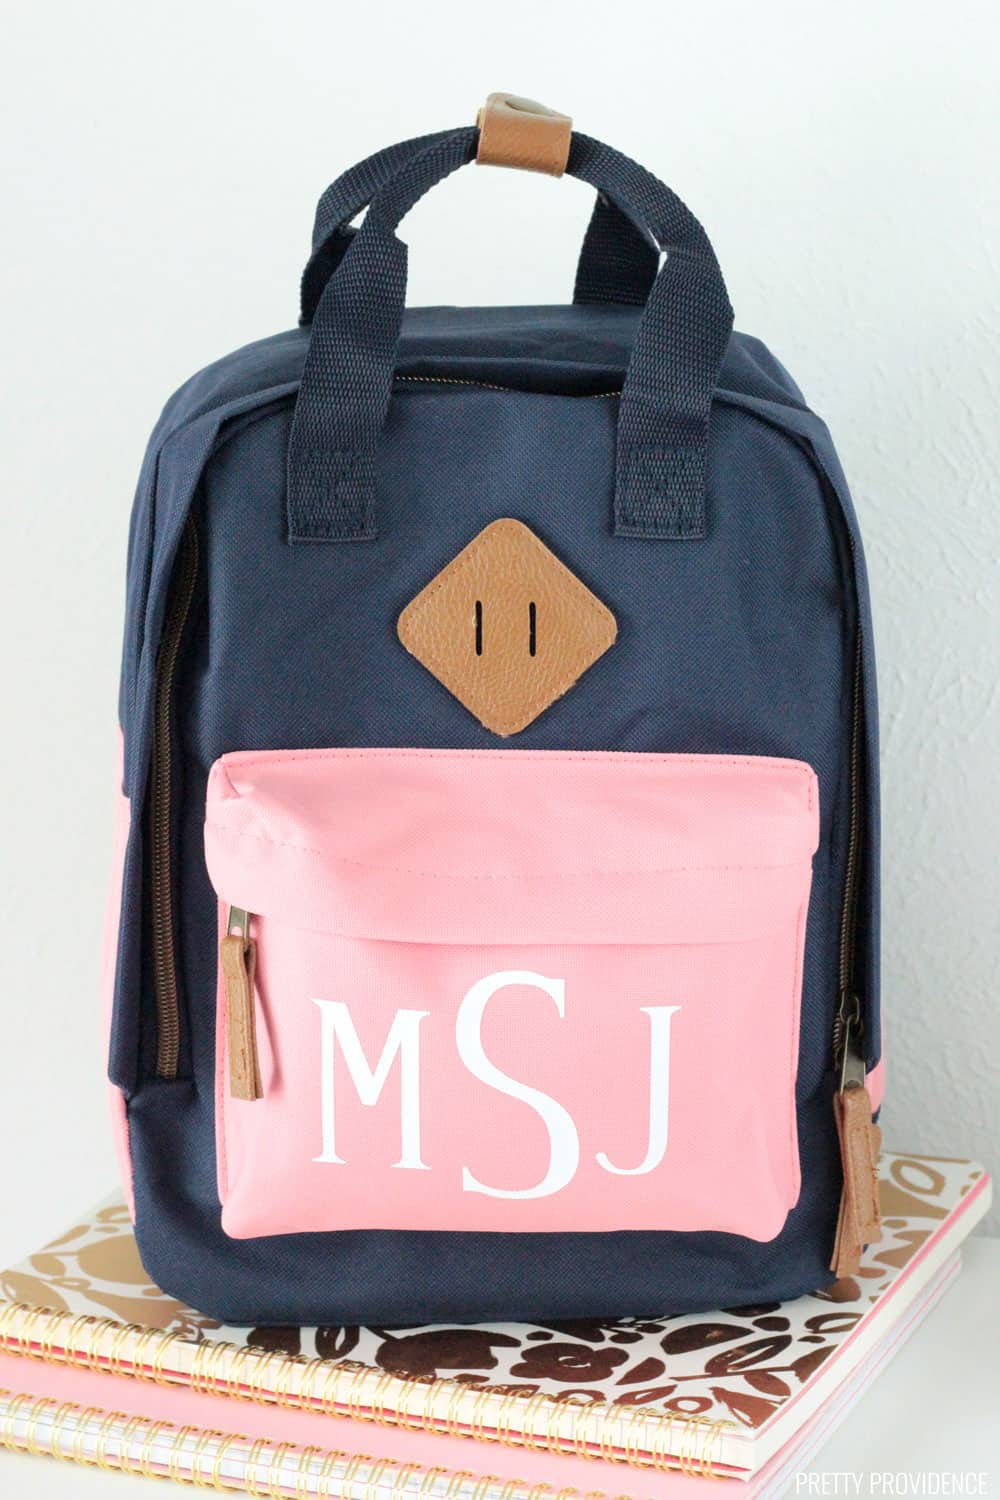 Navy blue backpack with a pink pocket monogrammed with letters M S J sitting atop two notebooks.